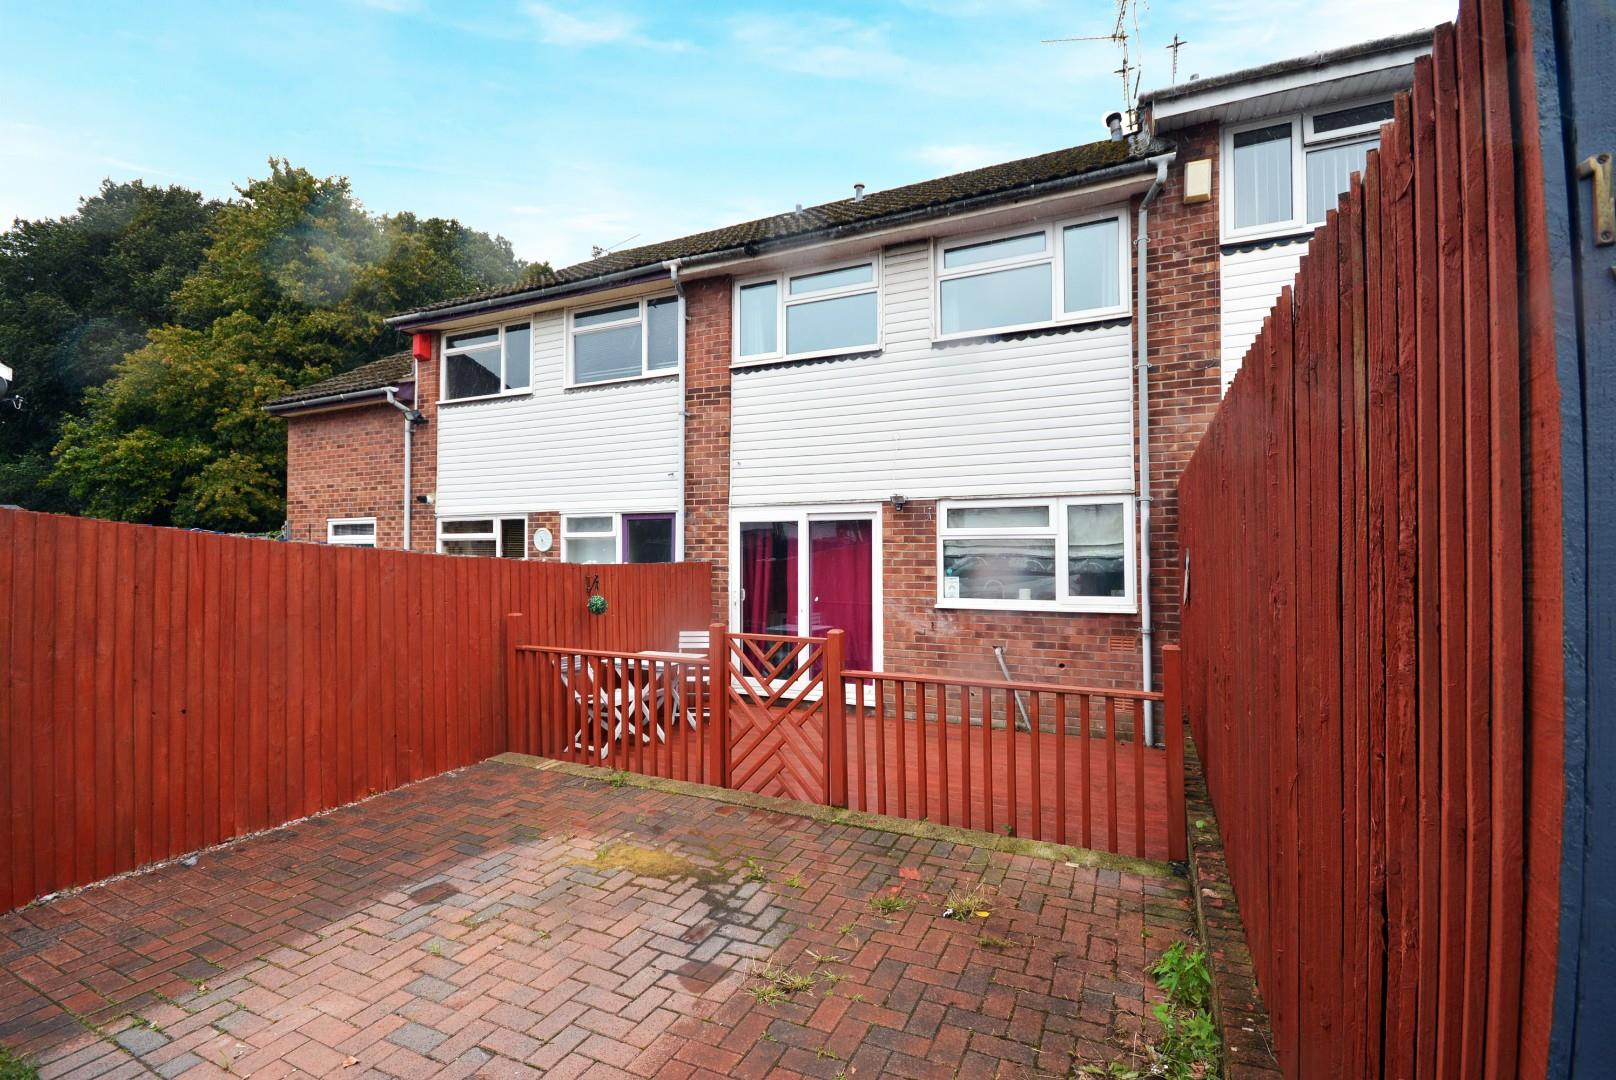 3 bed terraced house for sale in The Hawthorns, Cardiff, CF23